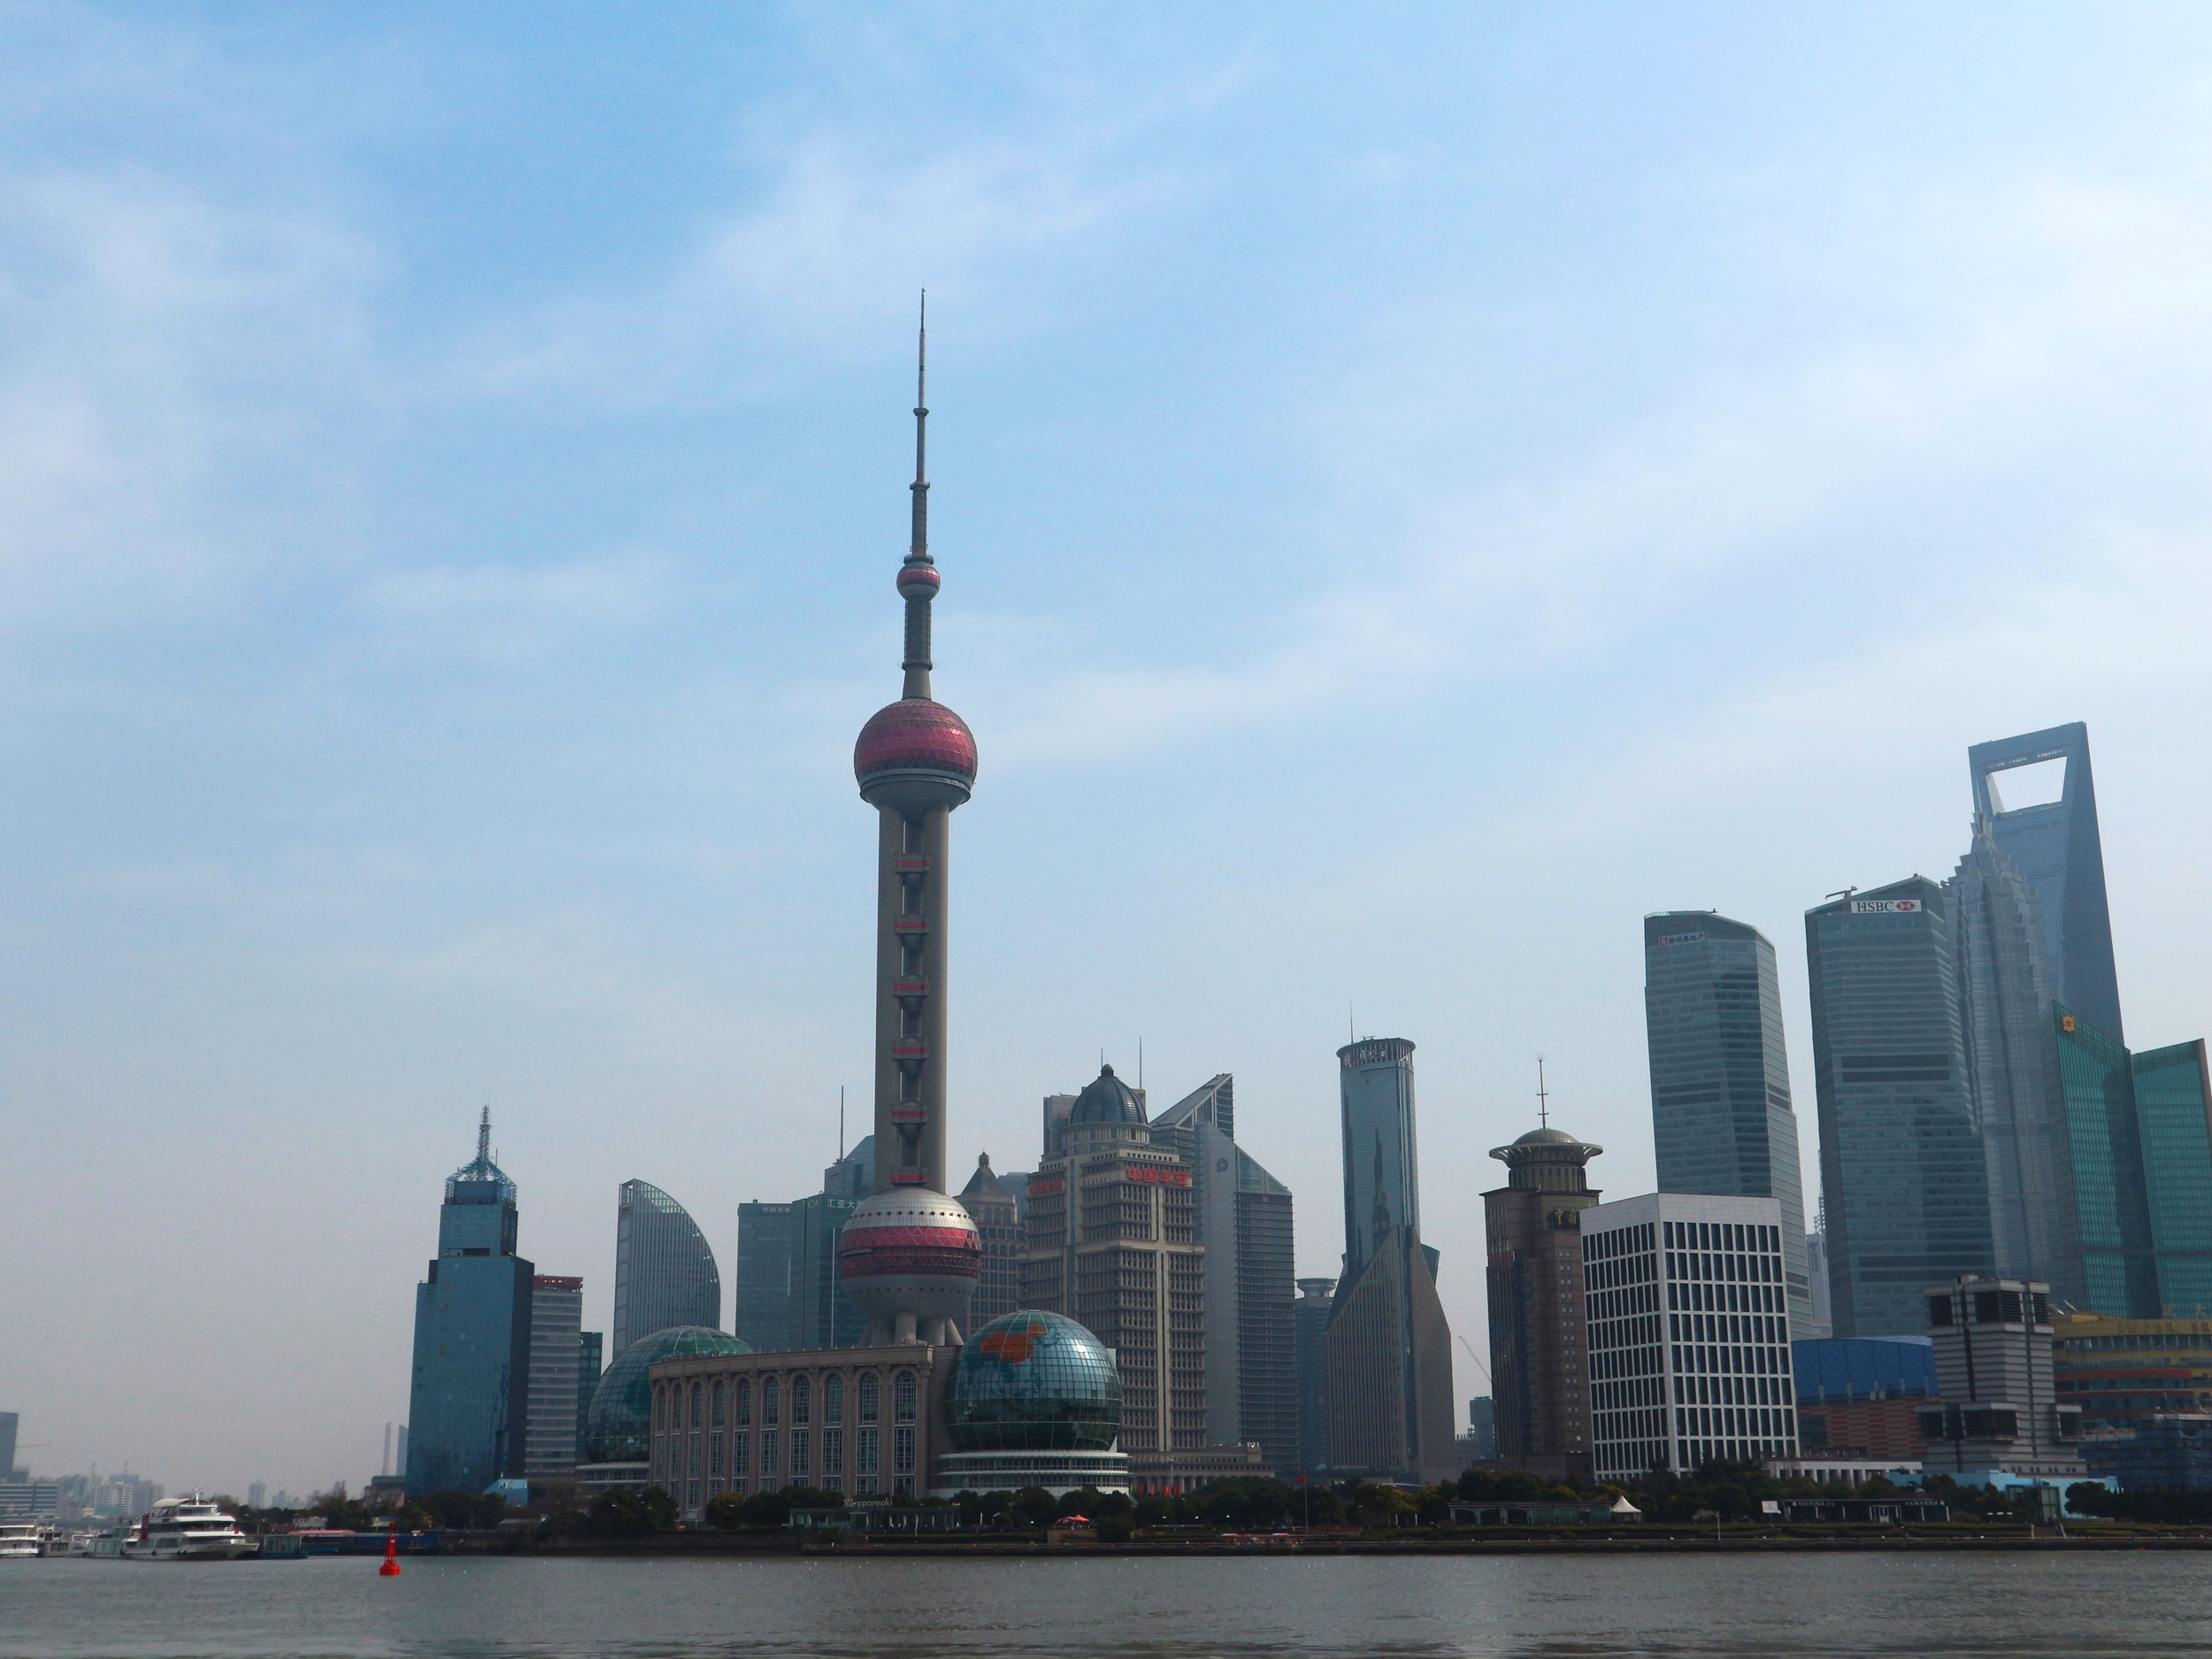 Daytime view from The Bund